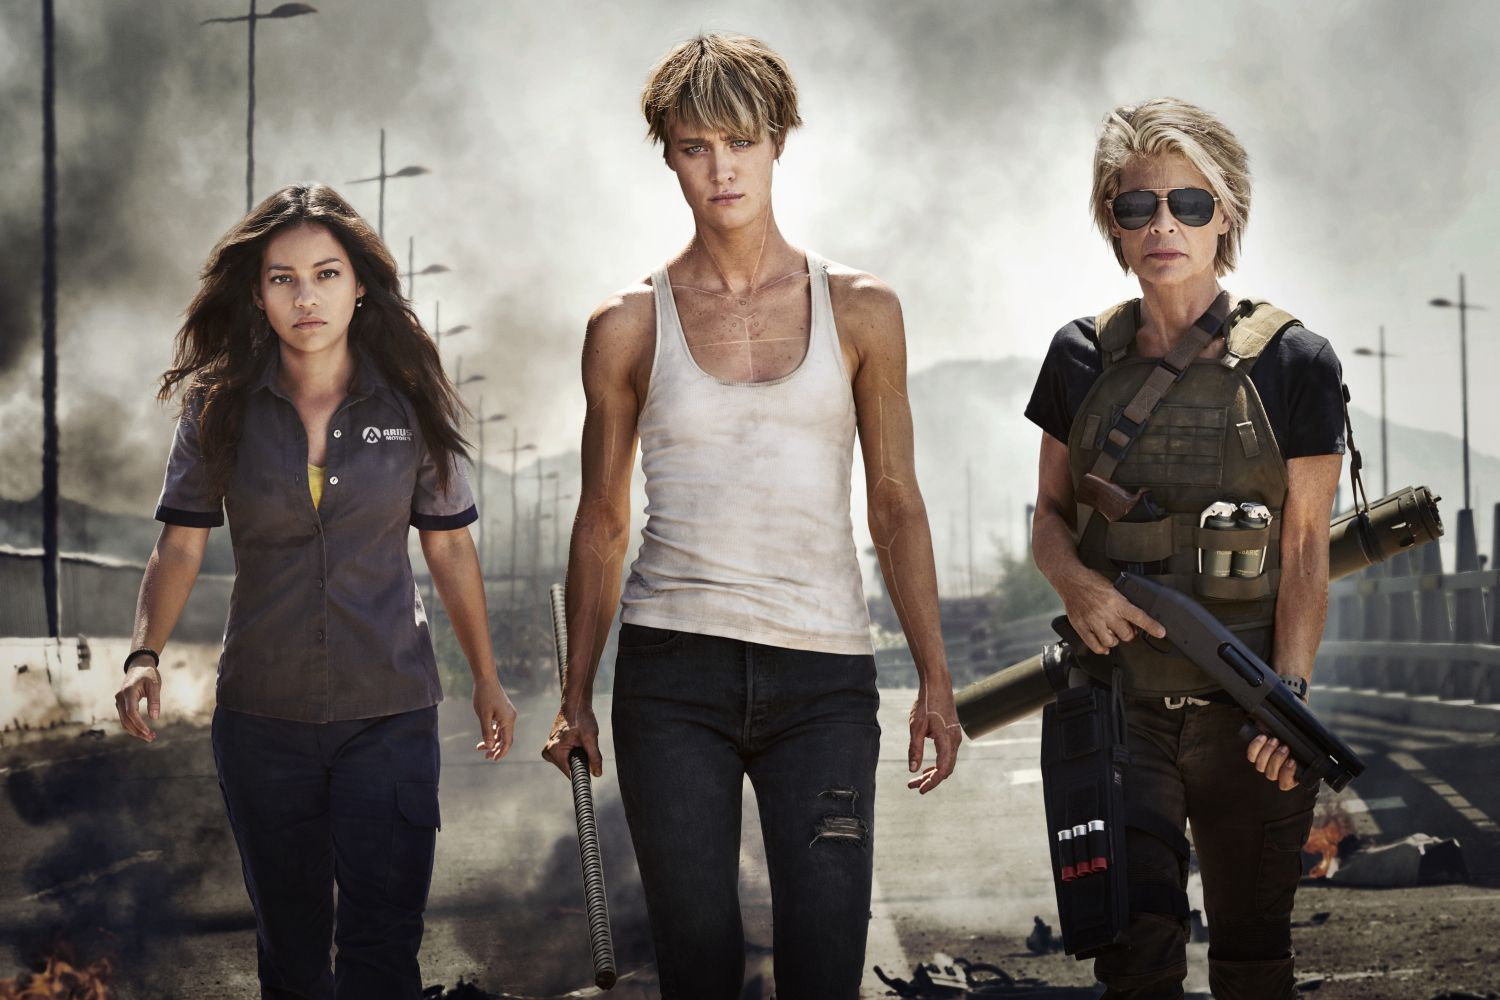 Terminator: Dark Fate gets right what Endgame's A-Force moment got *so* wrong